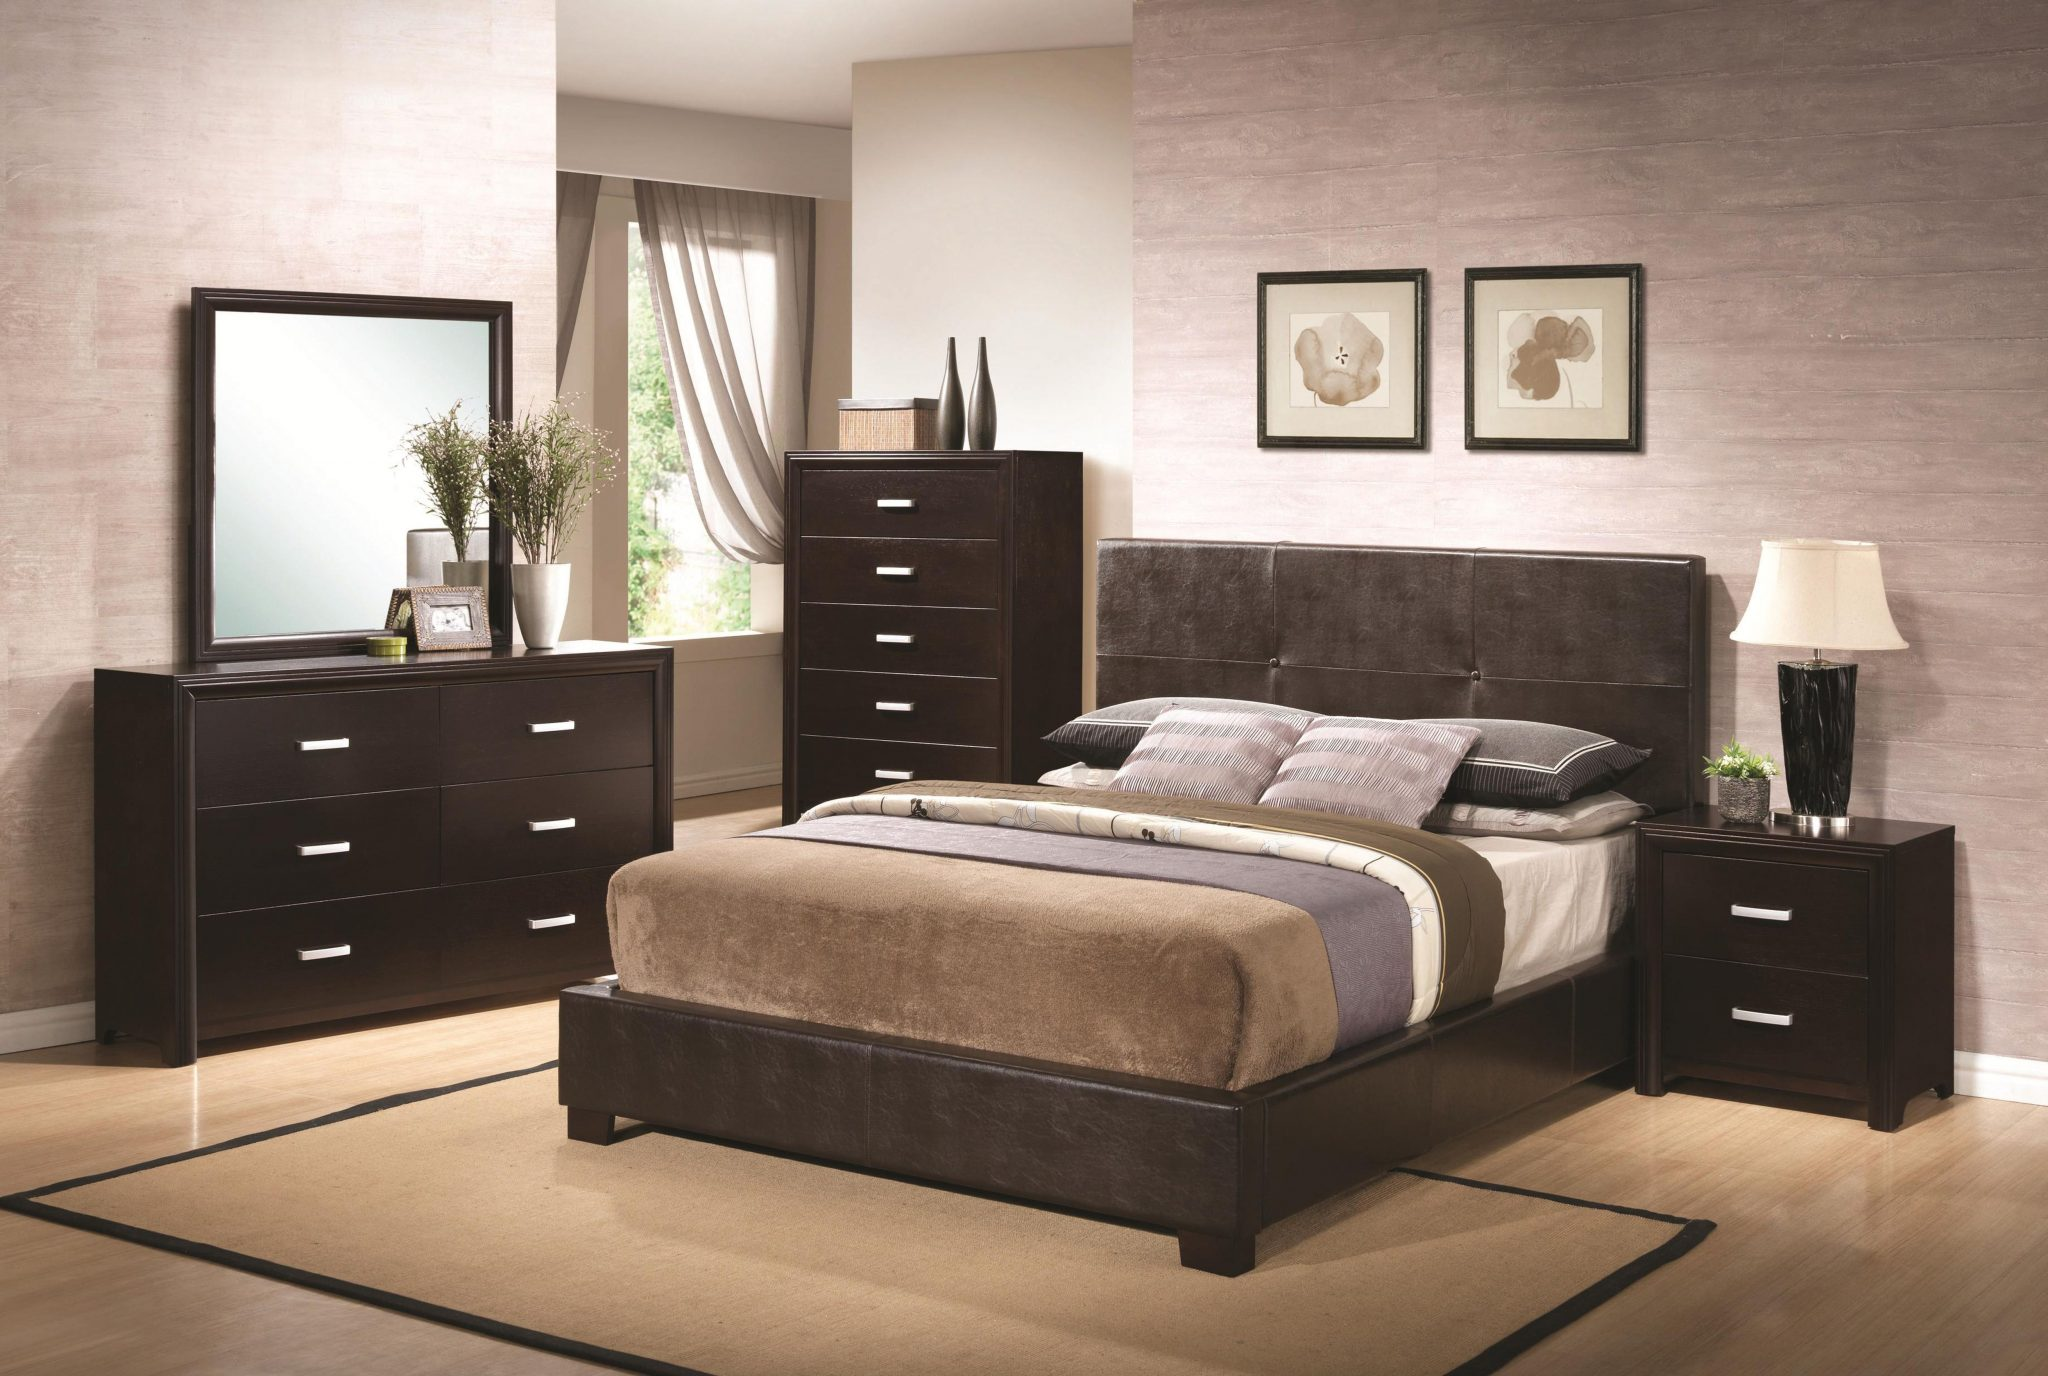 bedroom furniture interior design ideas photo - 10